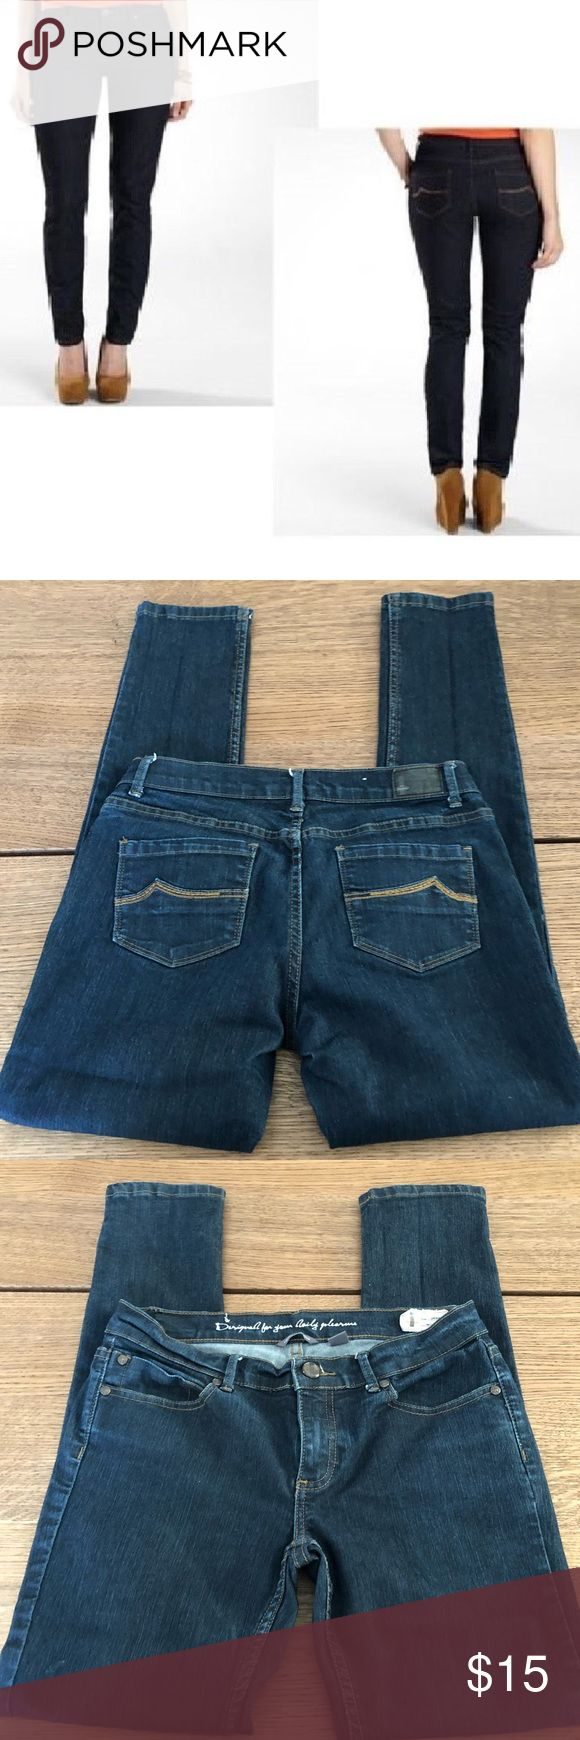 """Buffalo skinny jeans Super stretchy skinny jeans in dark wash, size 30 petite, style is Urbania petite skinny, excellent condition  Inseam  29"""" Rise  8"""" Waist  15.5"""" Leg opening  6"""" Bin14 i jeans by Buffalo Jeans Skinny"""